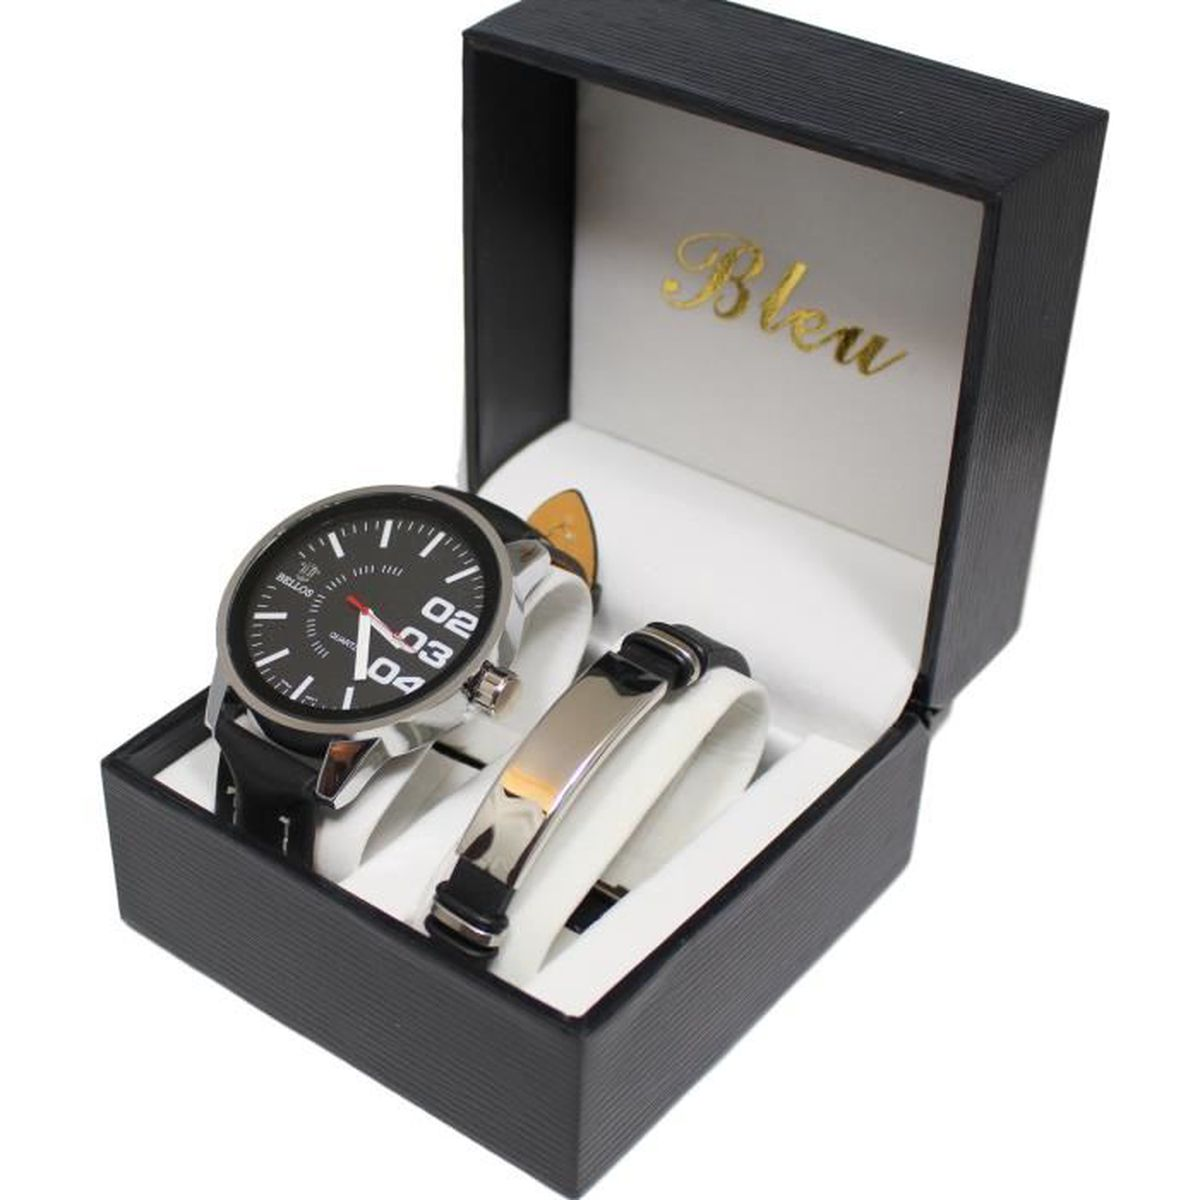 coffret montre homme gros cadran gourmette acier inoxydable stainless steal achat vente pack. Black Bedroom Furniture Sets. Home Design Ideas